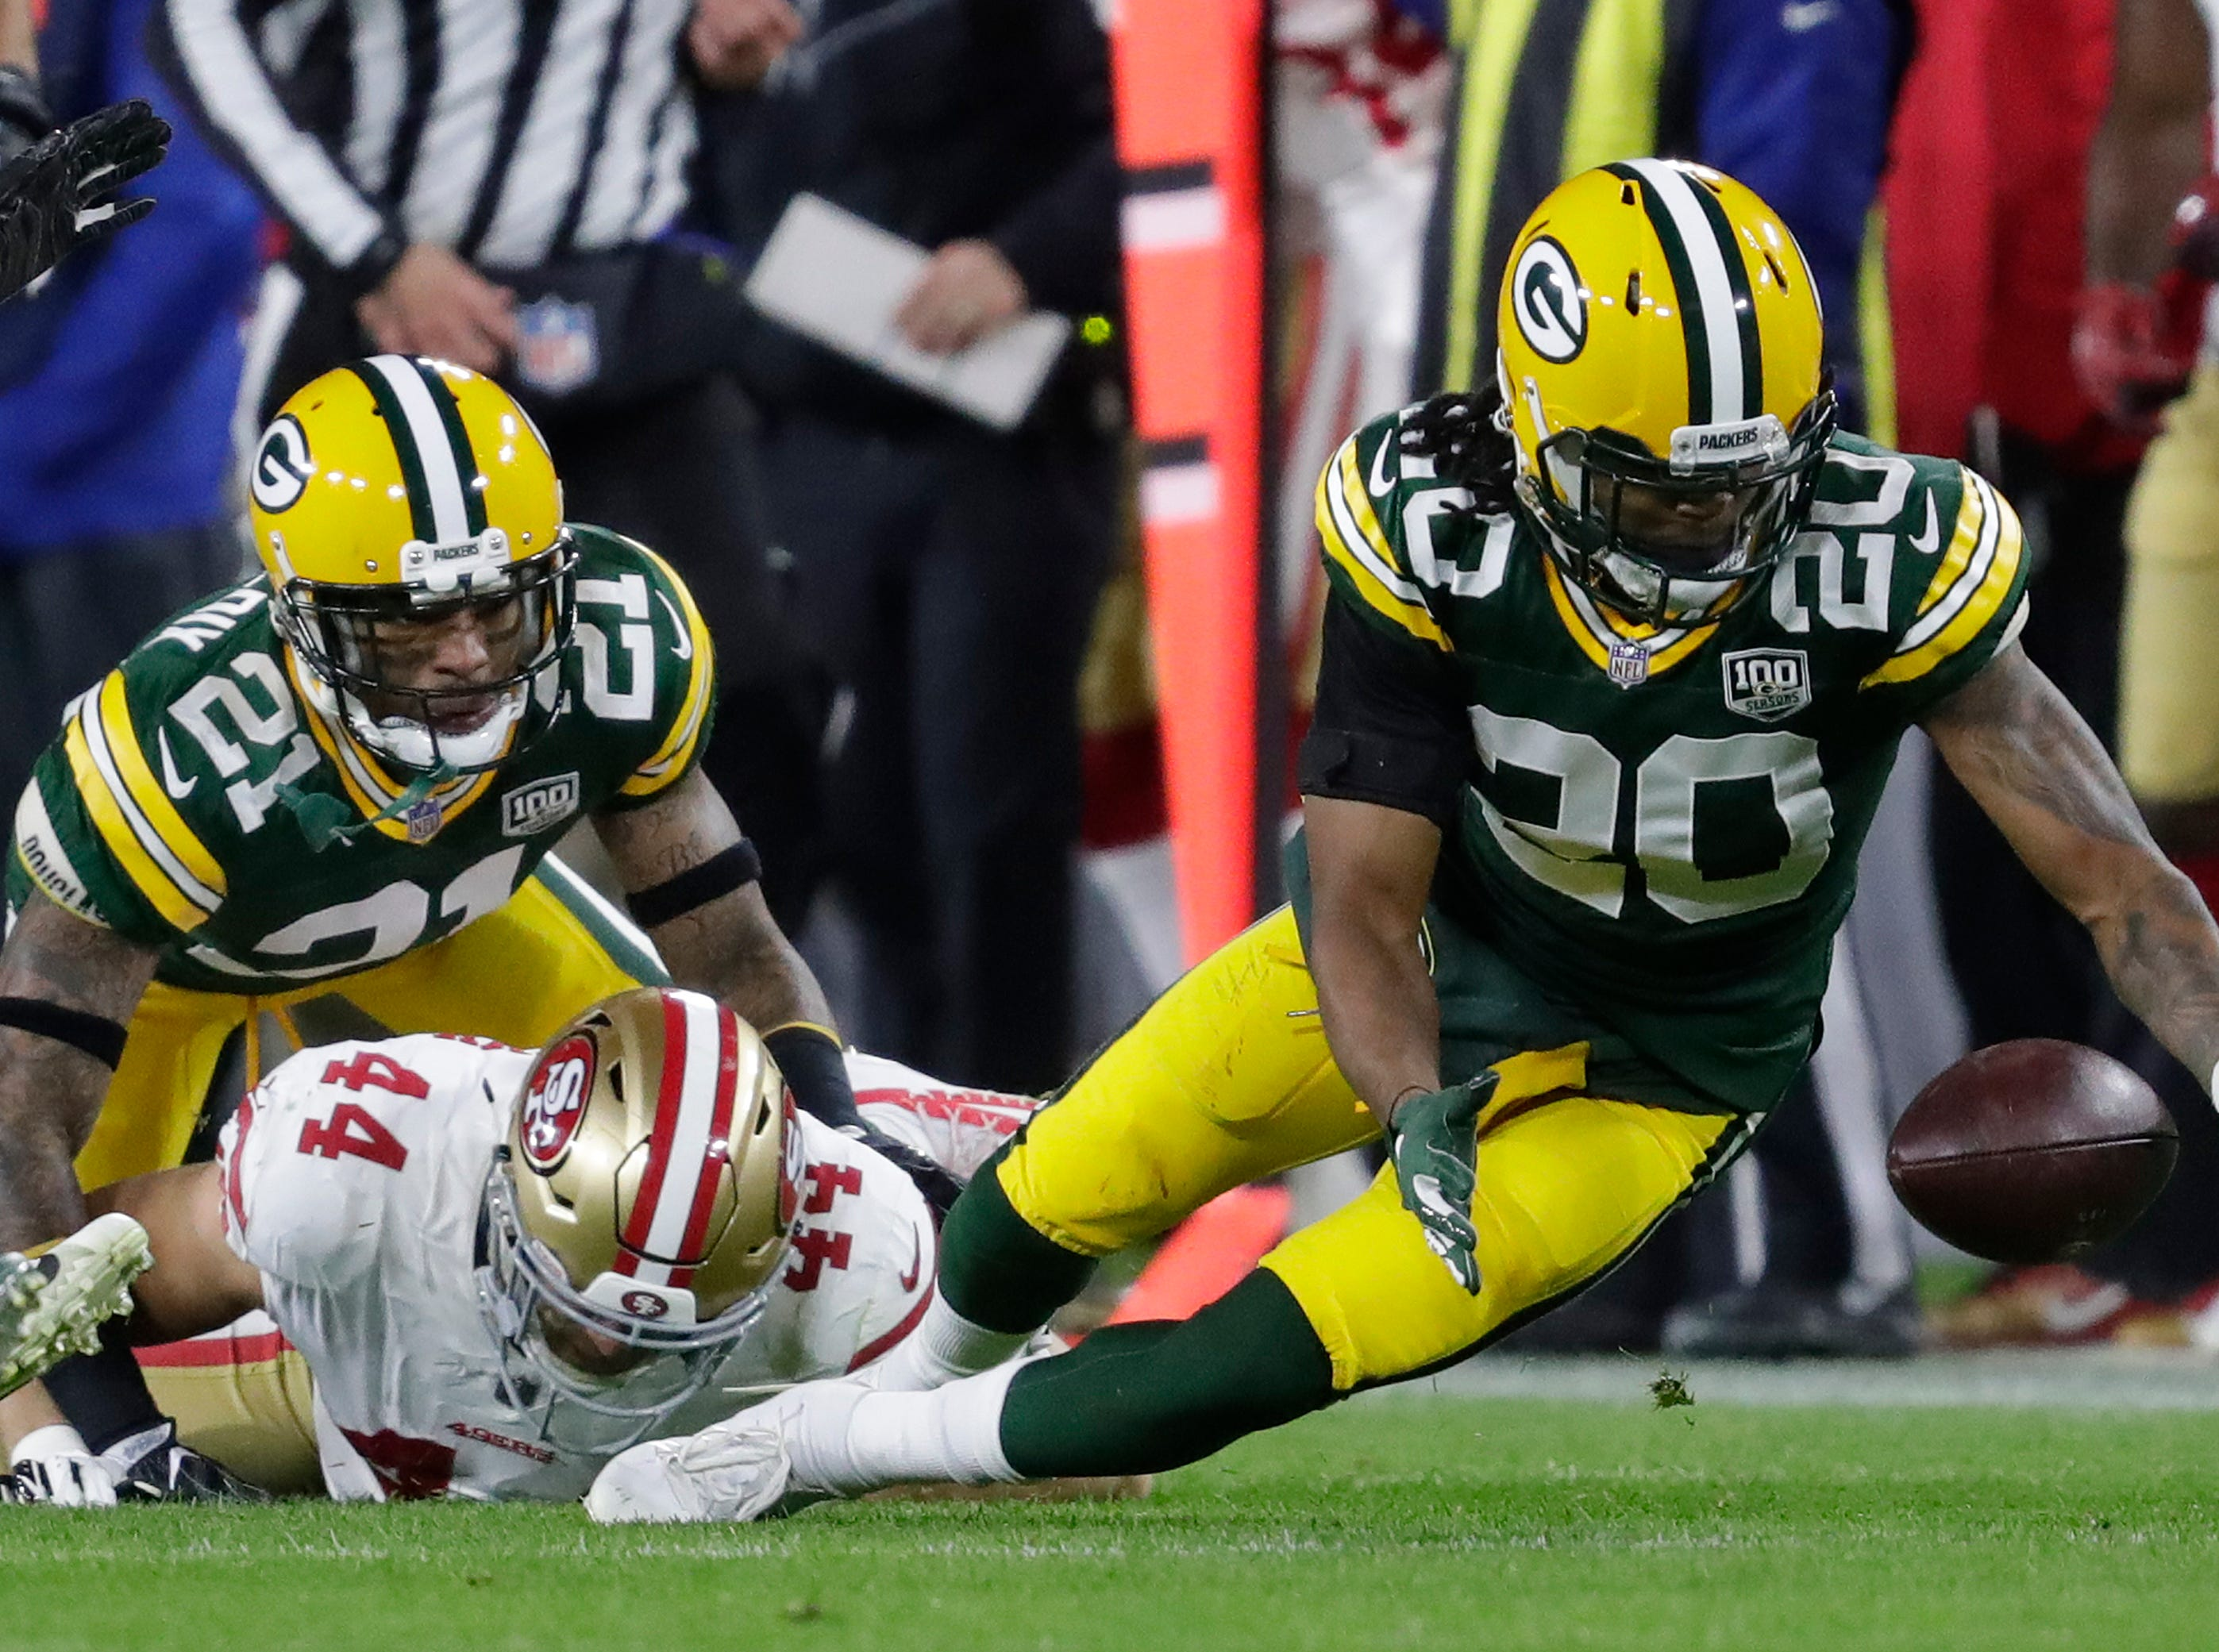 Green Bay Packers cornerback Kevin King (20) recovers a fumble by San Francisco 49ers running back Kyle Juszczyk (44) in the second quarter during their football game Monday, Oct. 15, 2018, at Lambeau Field in Green Bay, Wis. 